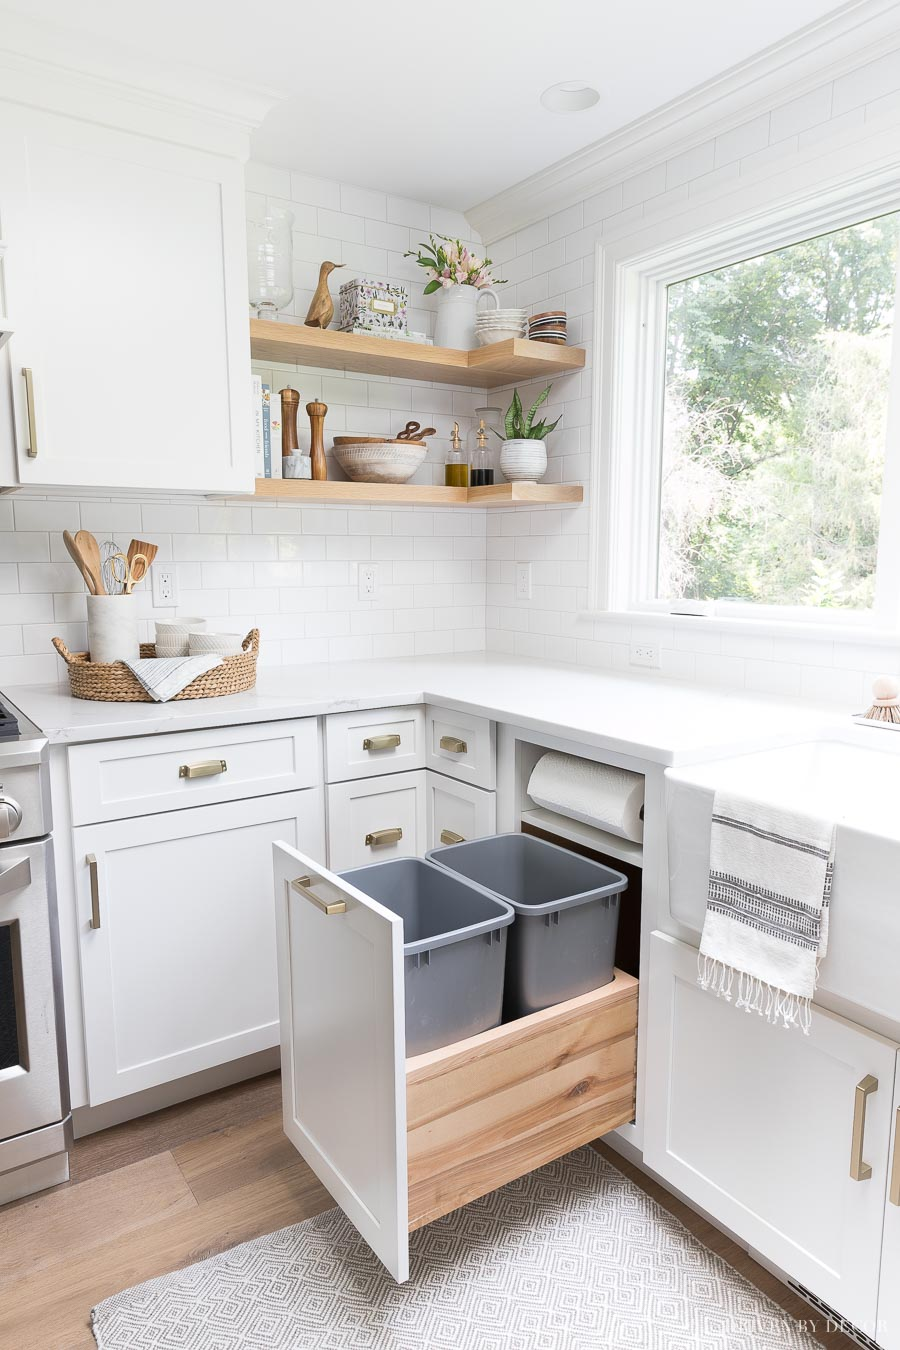 Cabinet Storage & Organization Ideas From Our New Kitchen ...